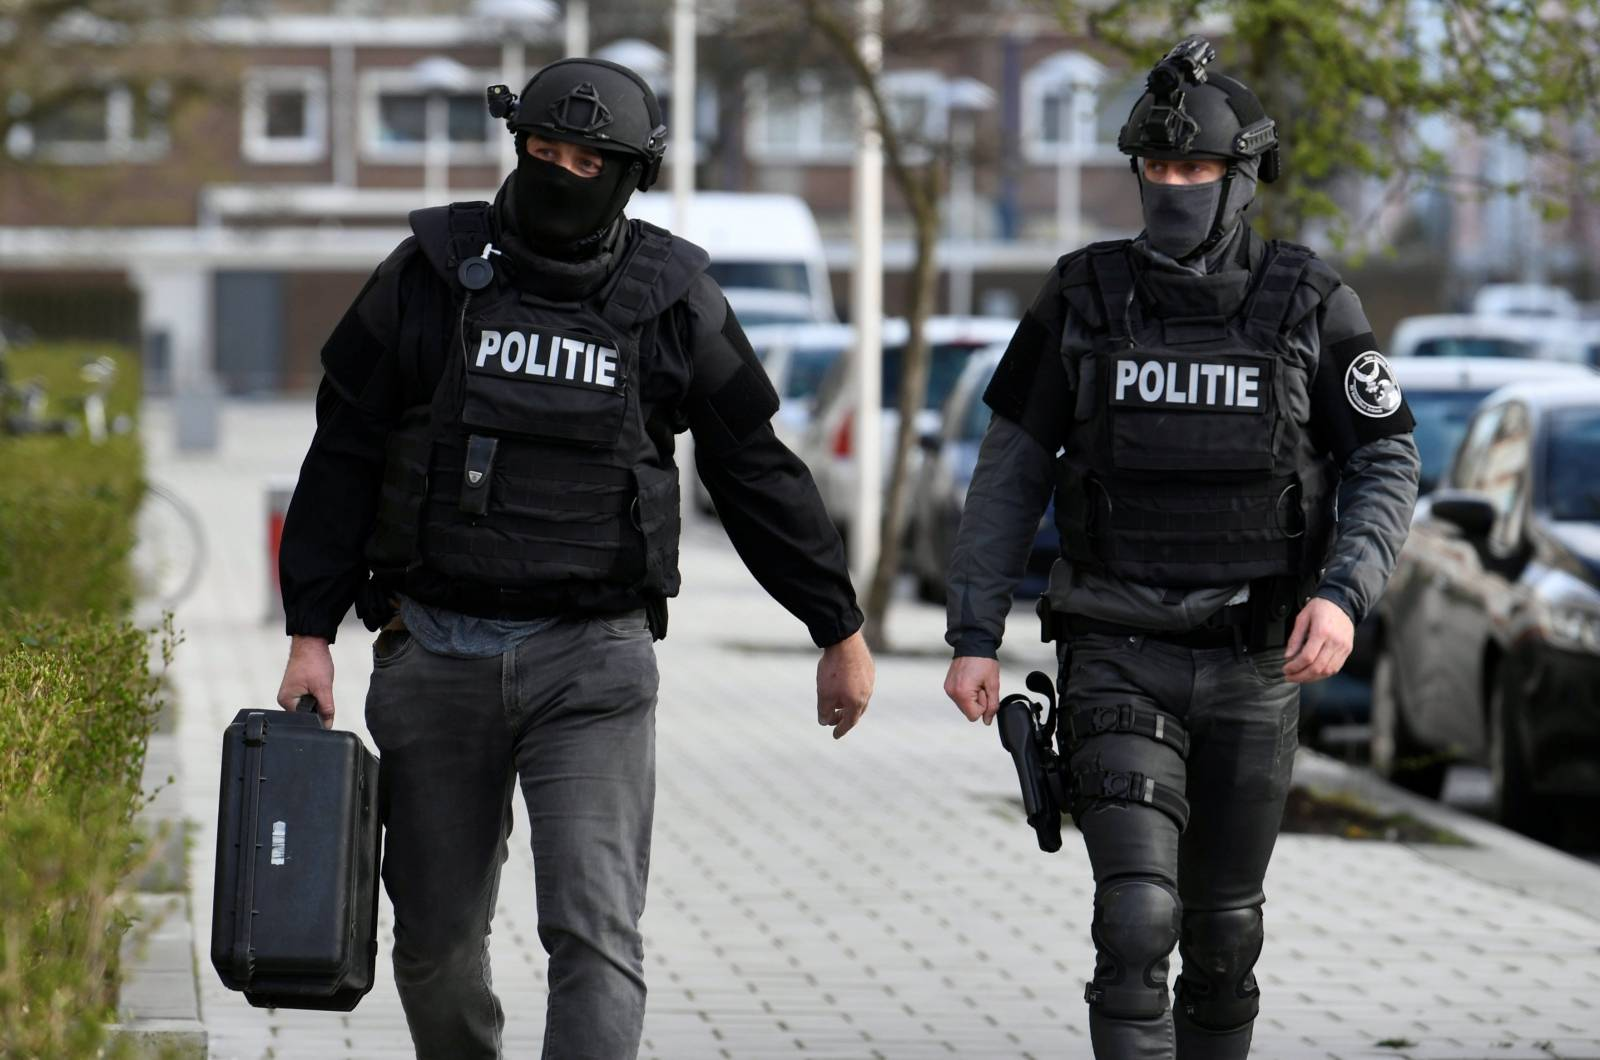 Police officers are seen after a shooting in Utrecht